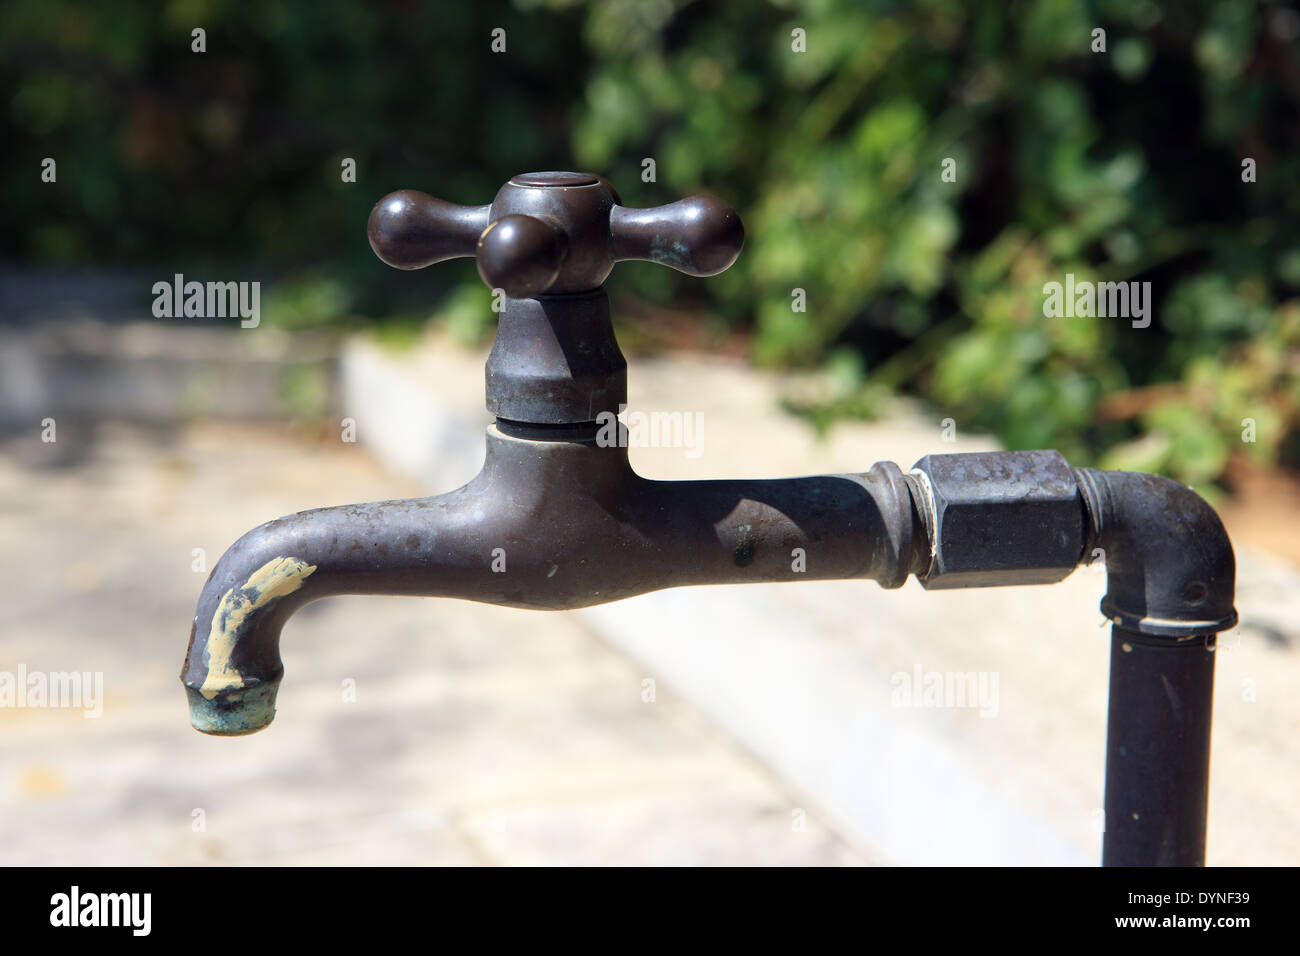 Outdoor tap - Stock Image